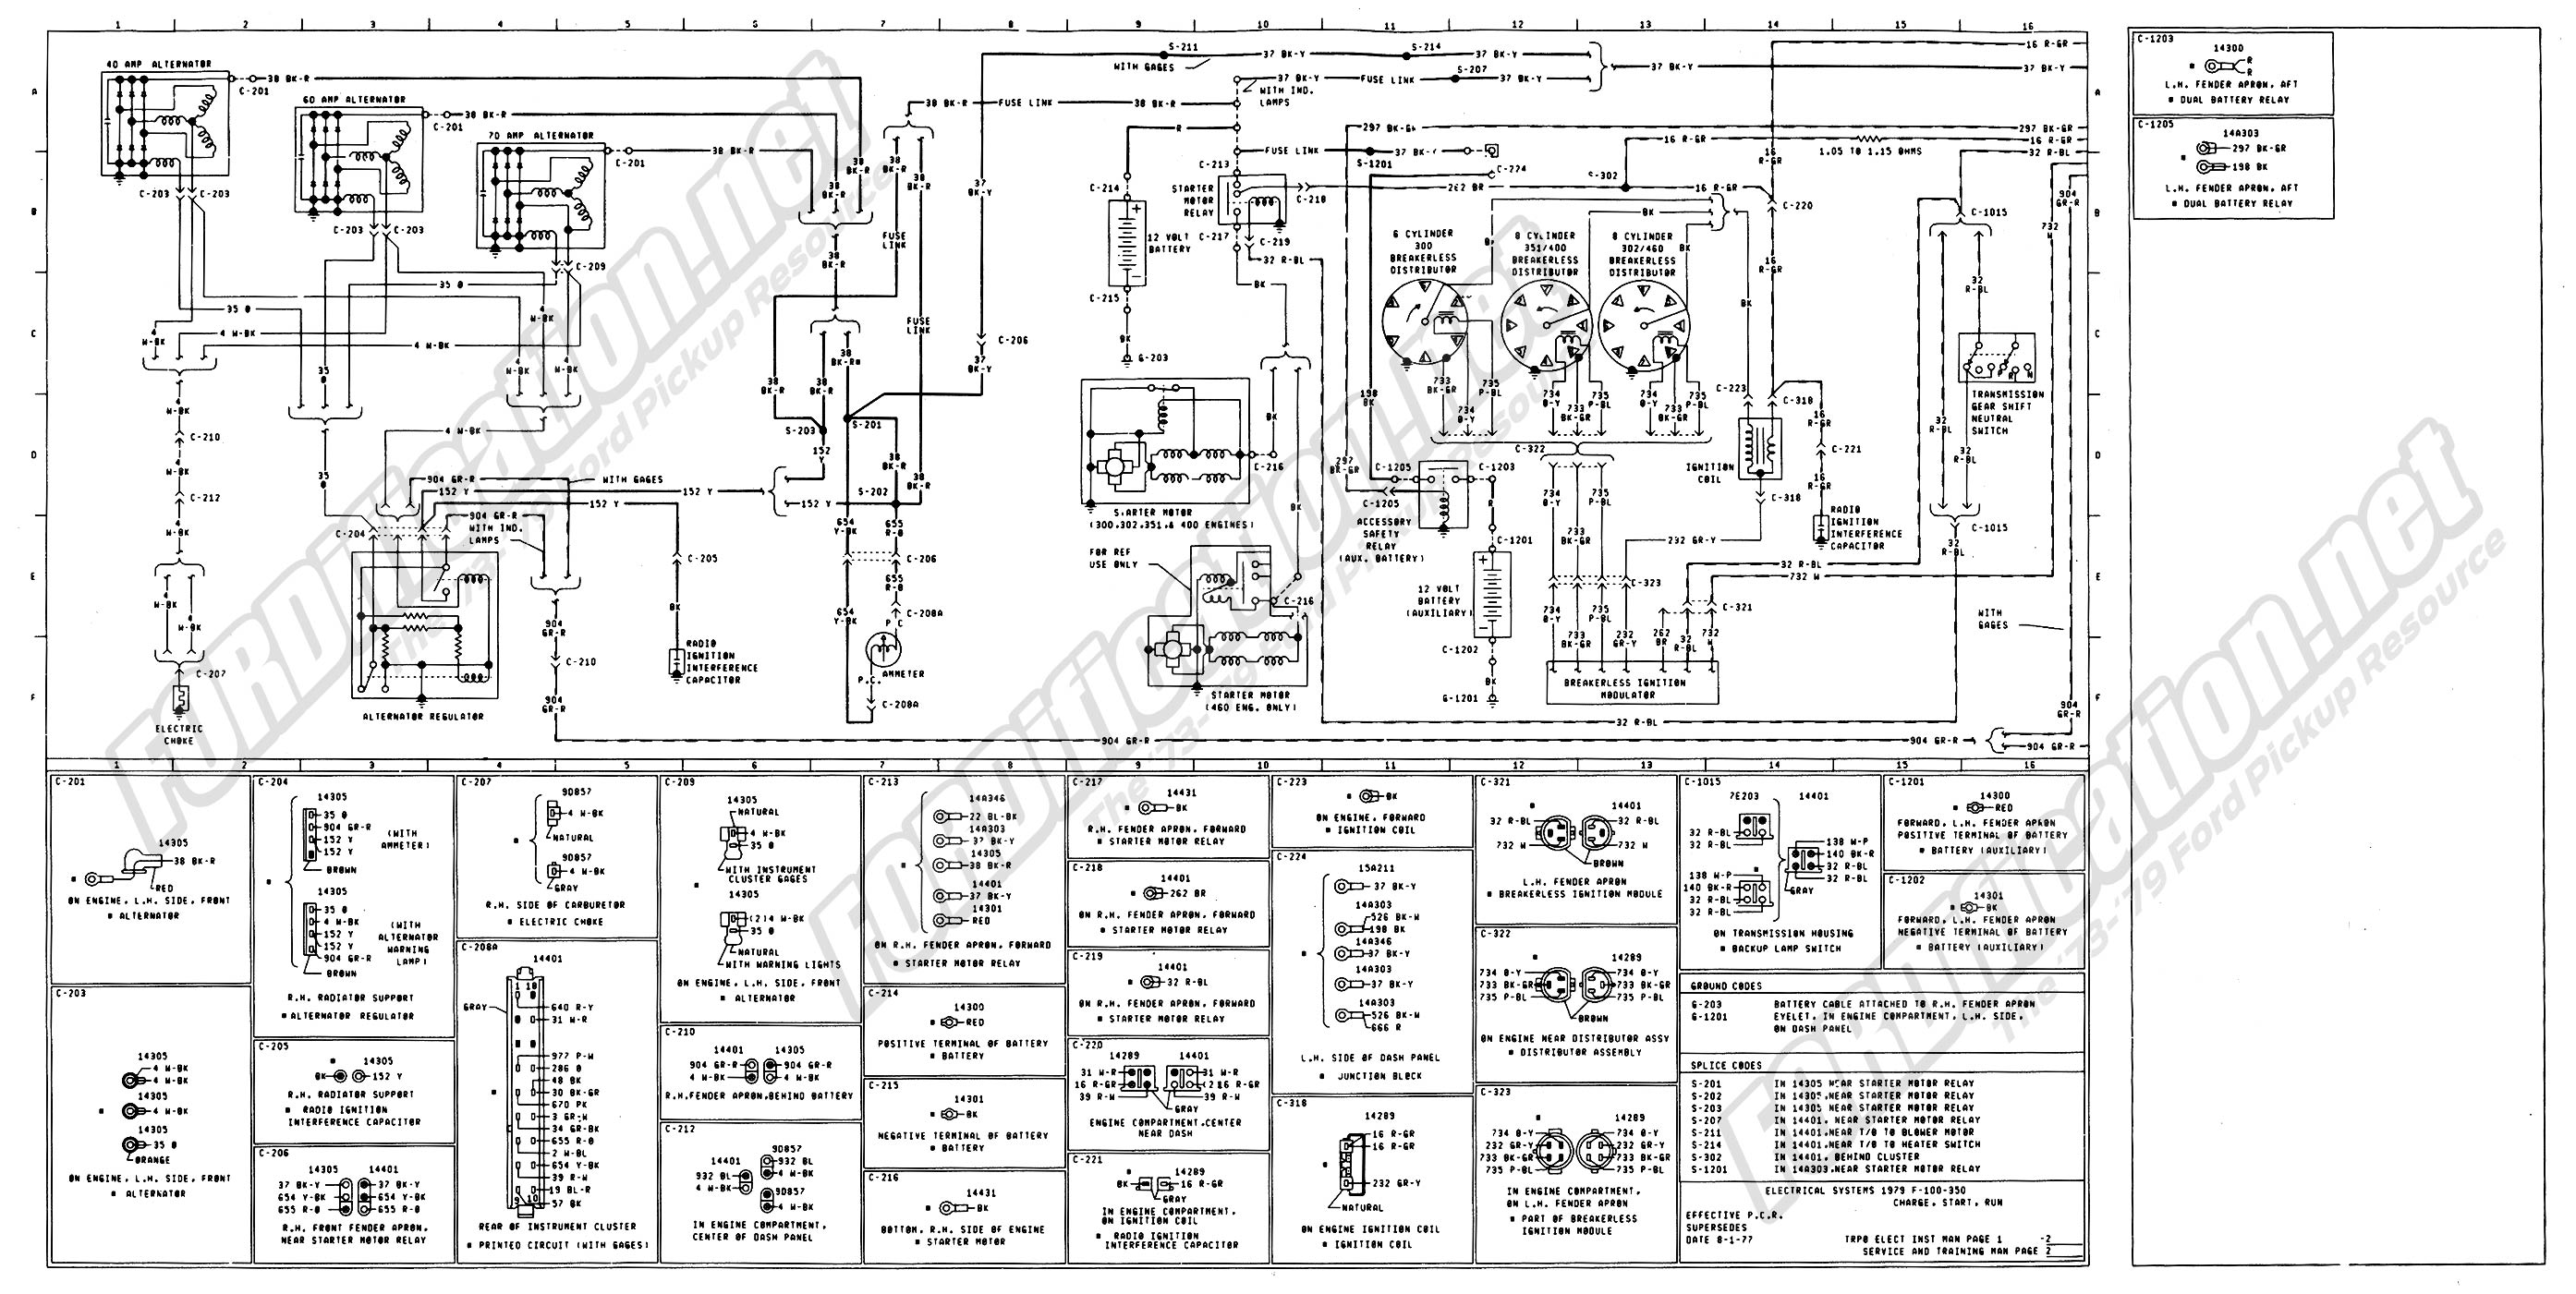 wiring_79master_2of9 1973 1979 ford truck wiring diagrams & schematics fordification net 79 mustang wiring diagrams at cos-gaming.co